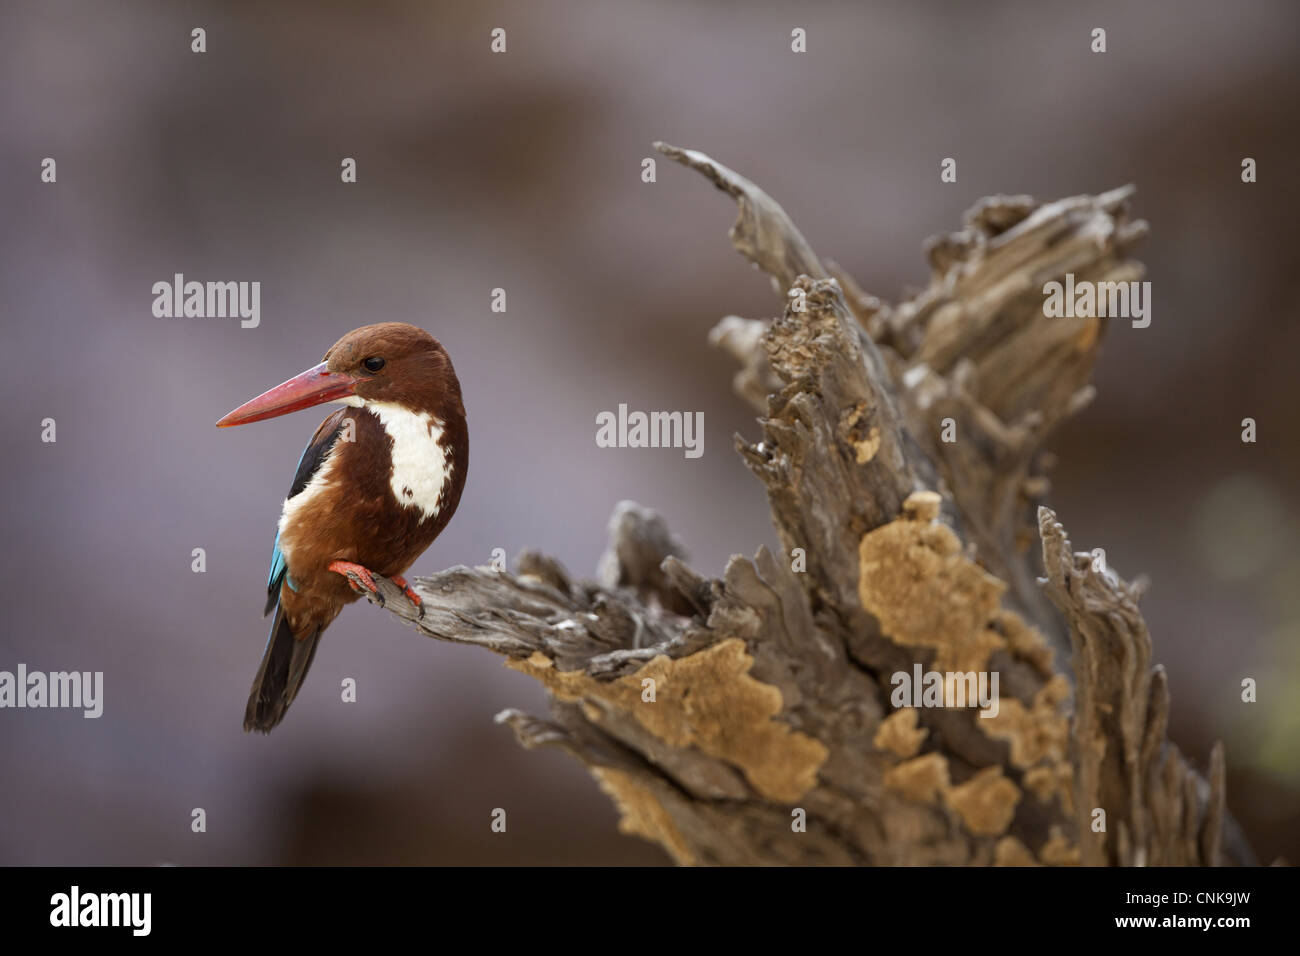 White-throated Kingfisher (Halcyon smyrnensis) adult, perched on stump, Ranthambore N.P., Rajasthan, India - Stock Image